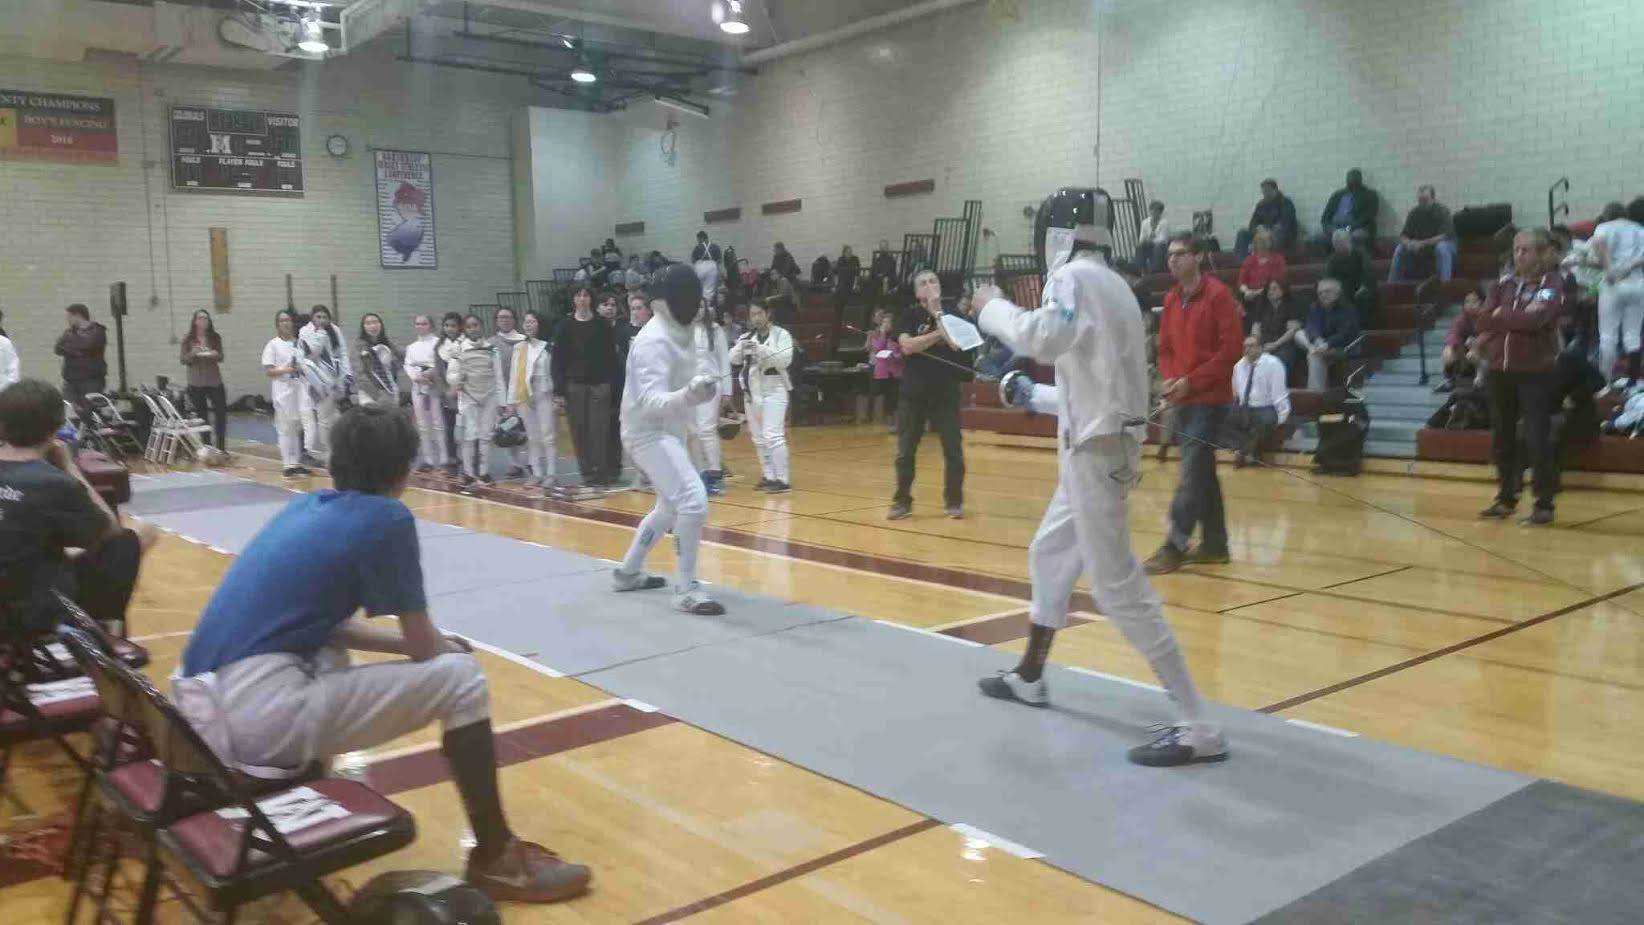 Morristown high school fencing has quot hearts for hedda